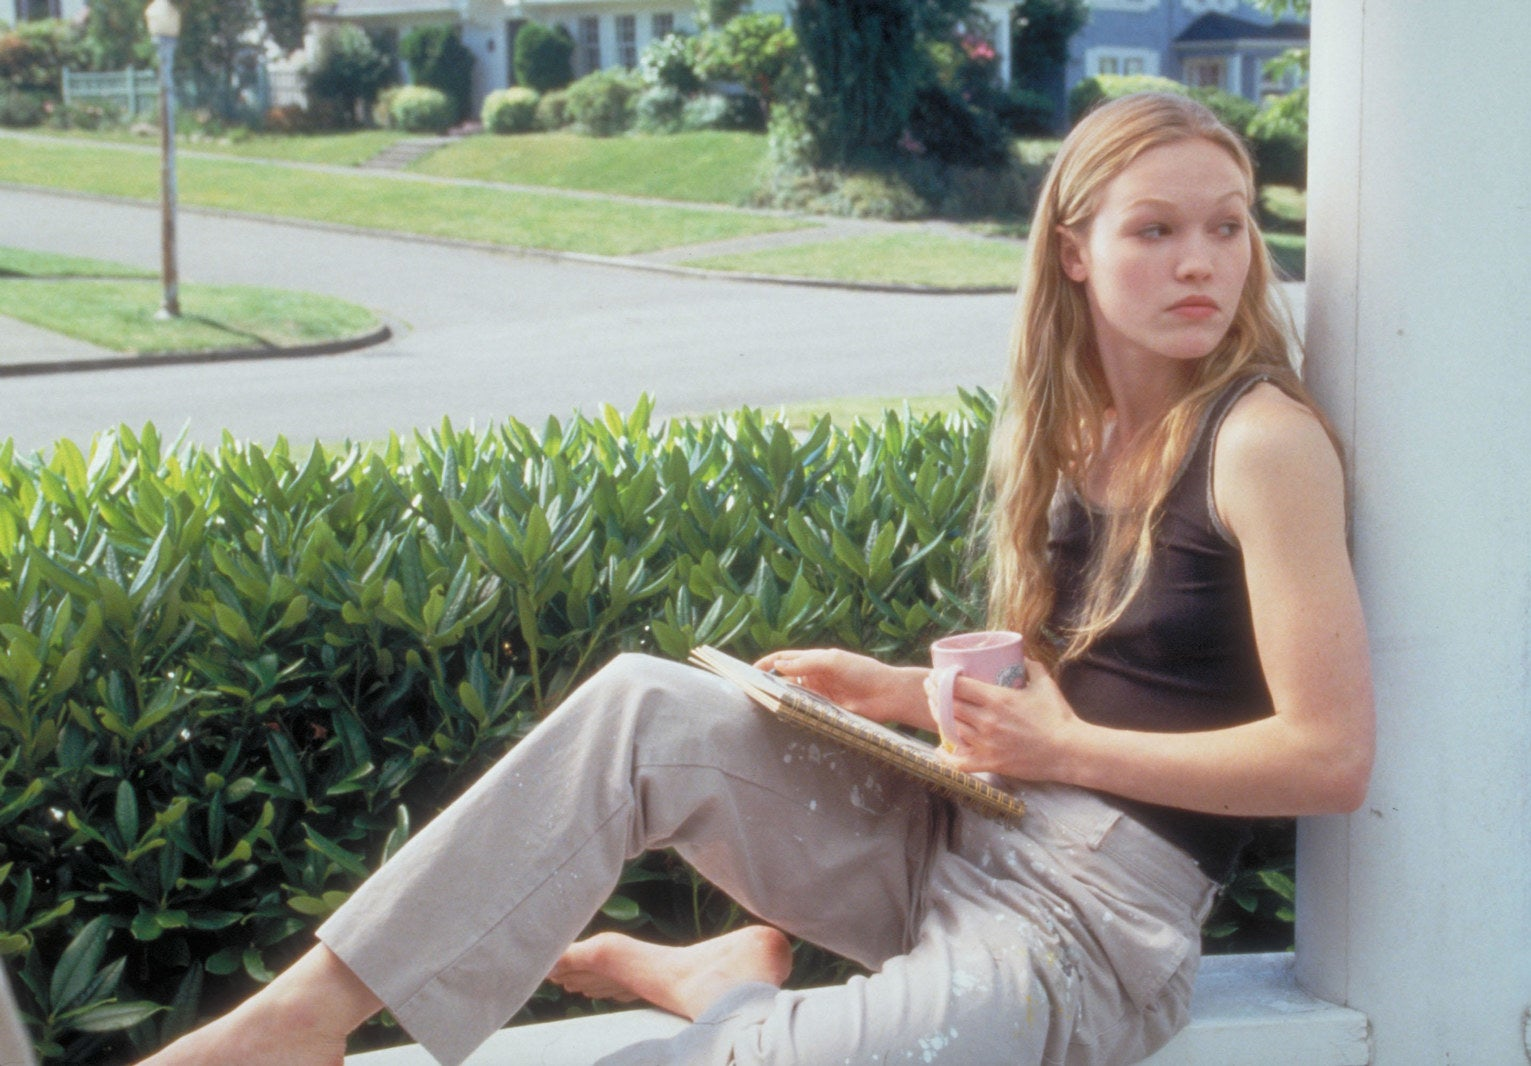 Kat in 10 Things I Hate About You.